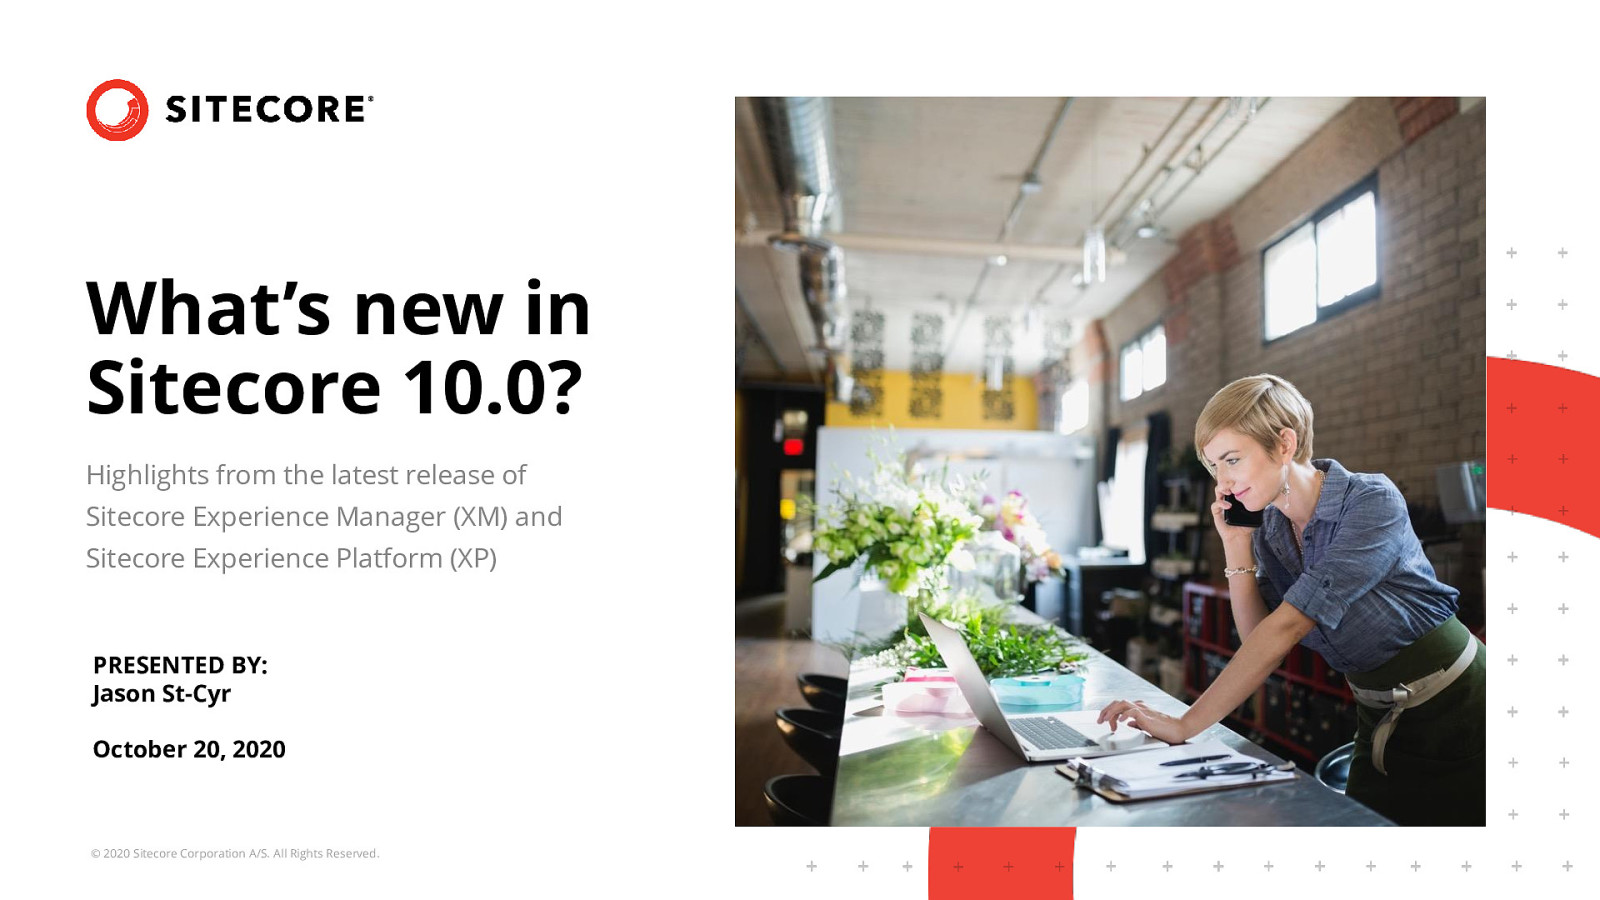 What's new in Sitecore 10.0?